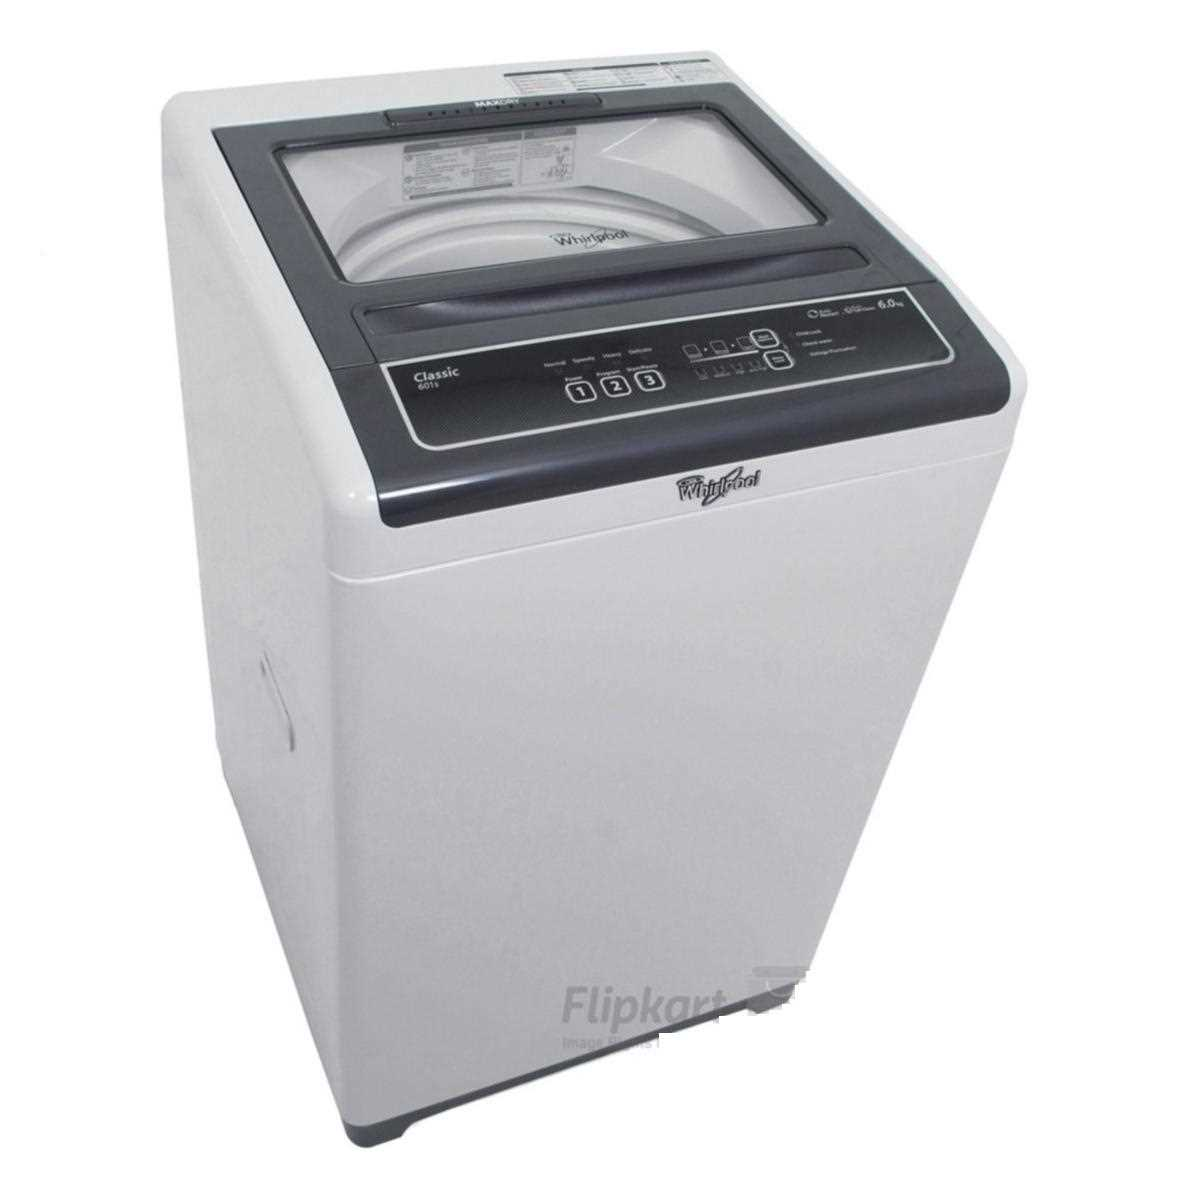 Whirlpool Classic 601S 6 Kg Fully Automatic Top Loading Washing ...